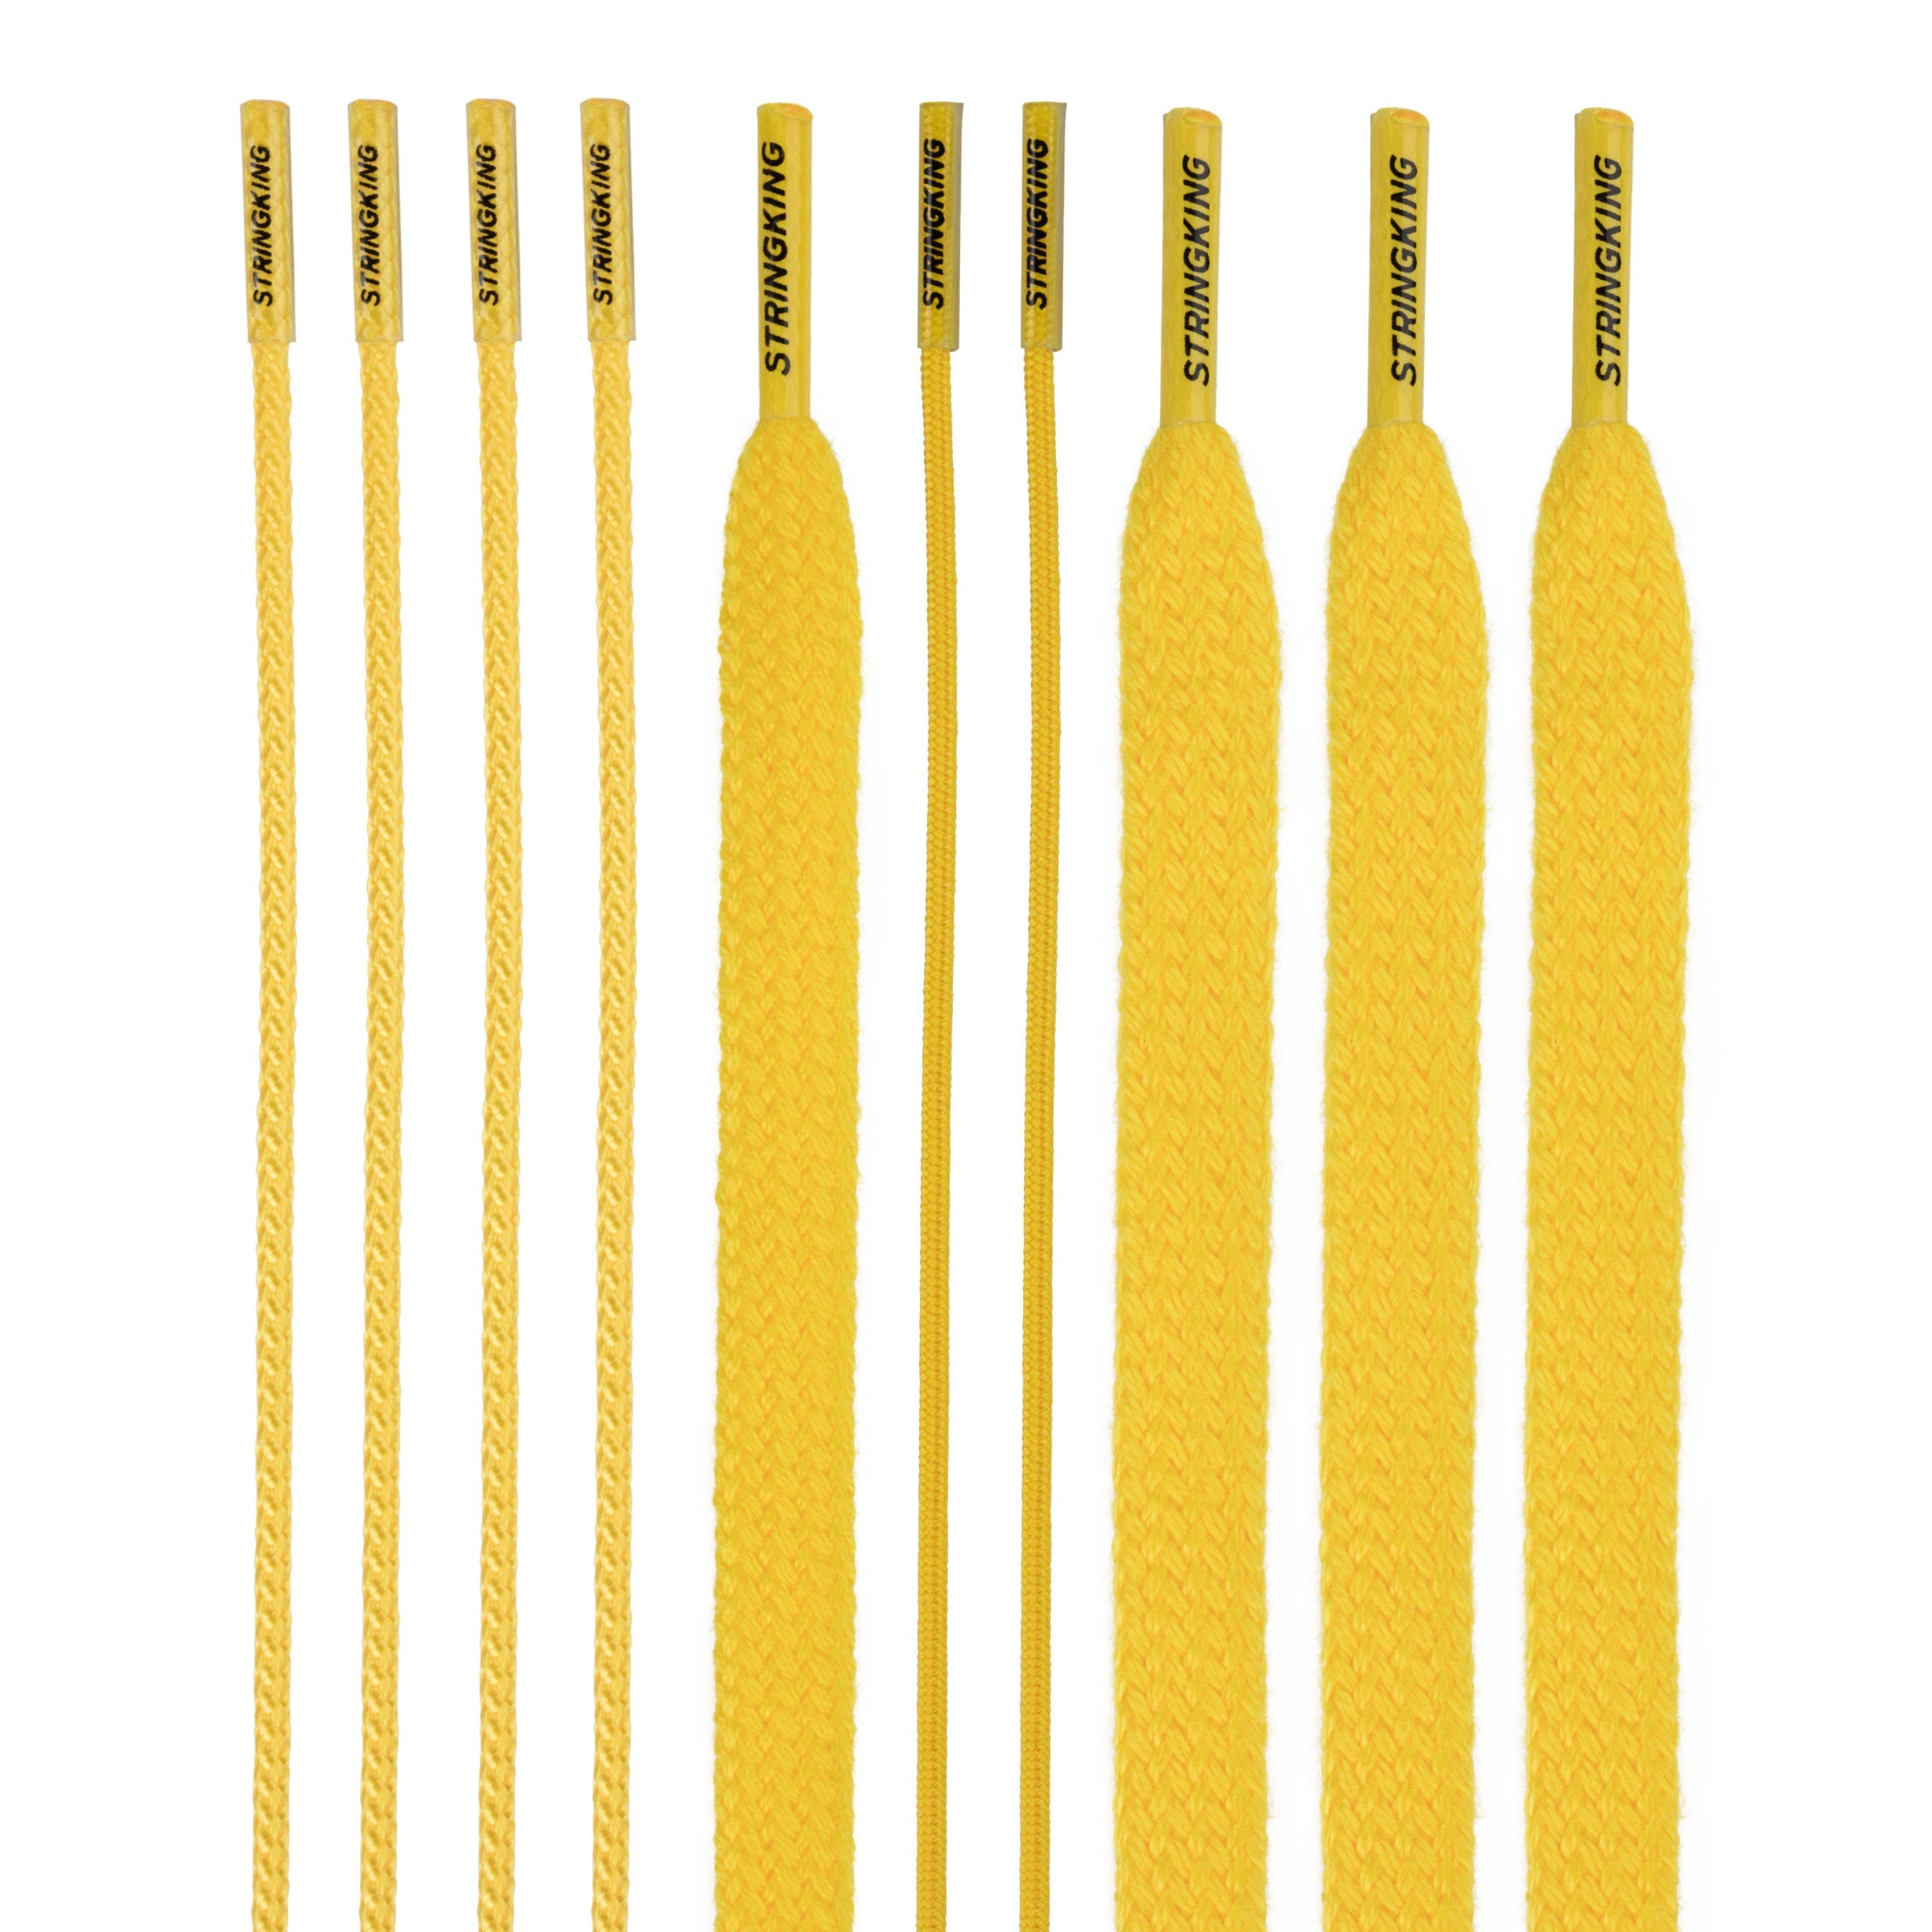 string-kit-BB-retailers-yellow-1-scaled-1.jpg